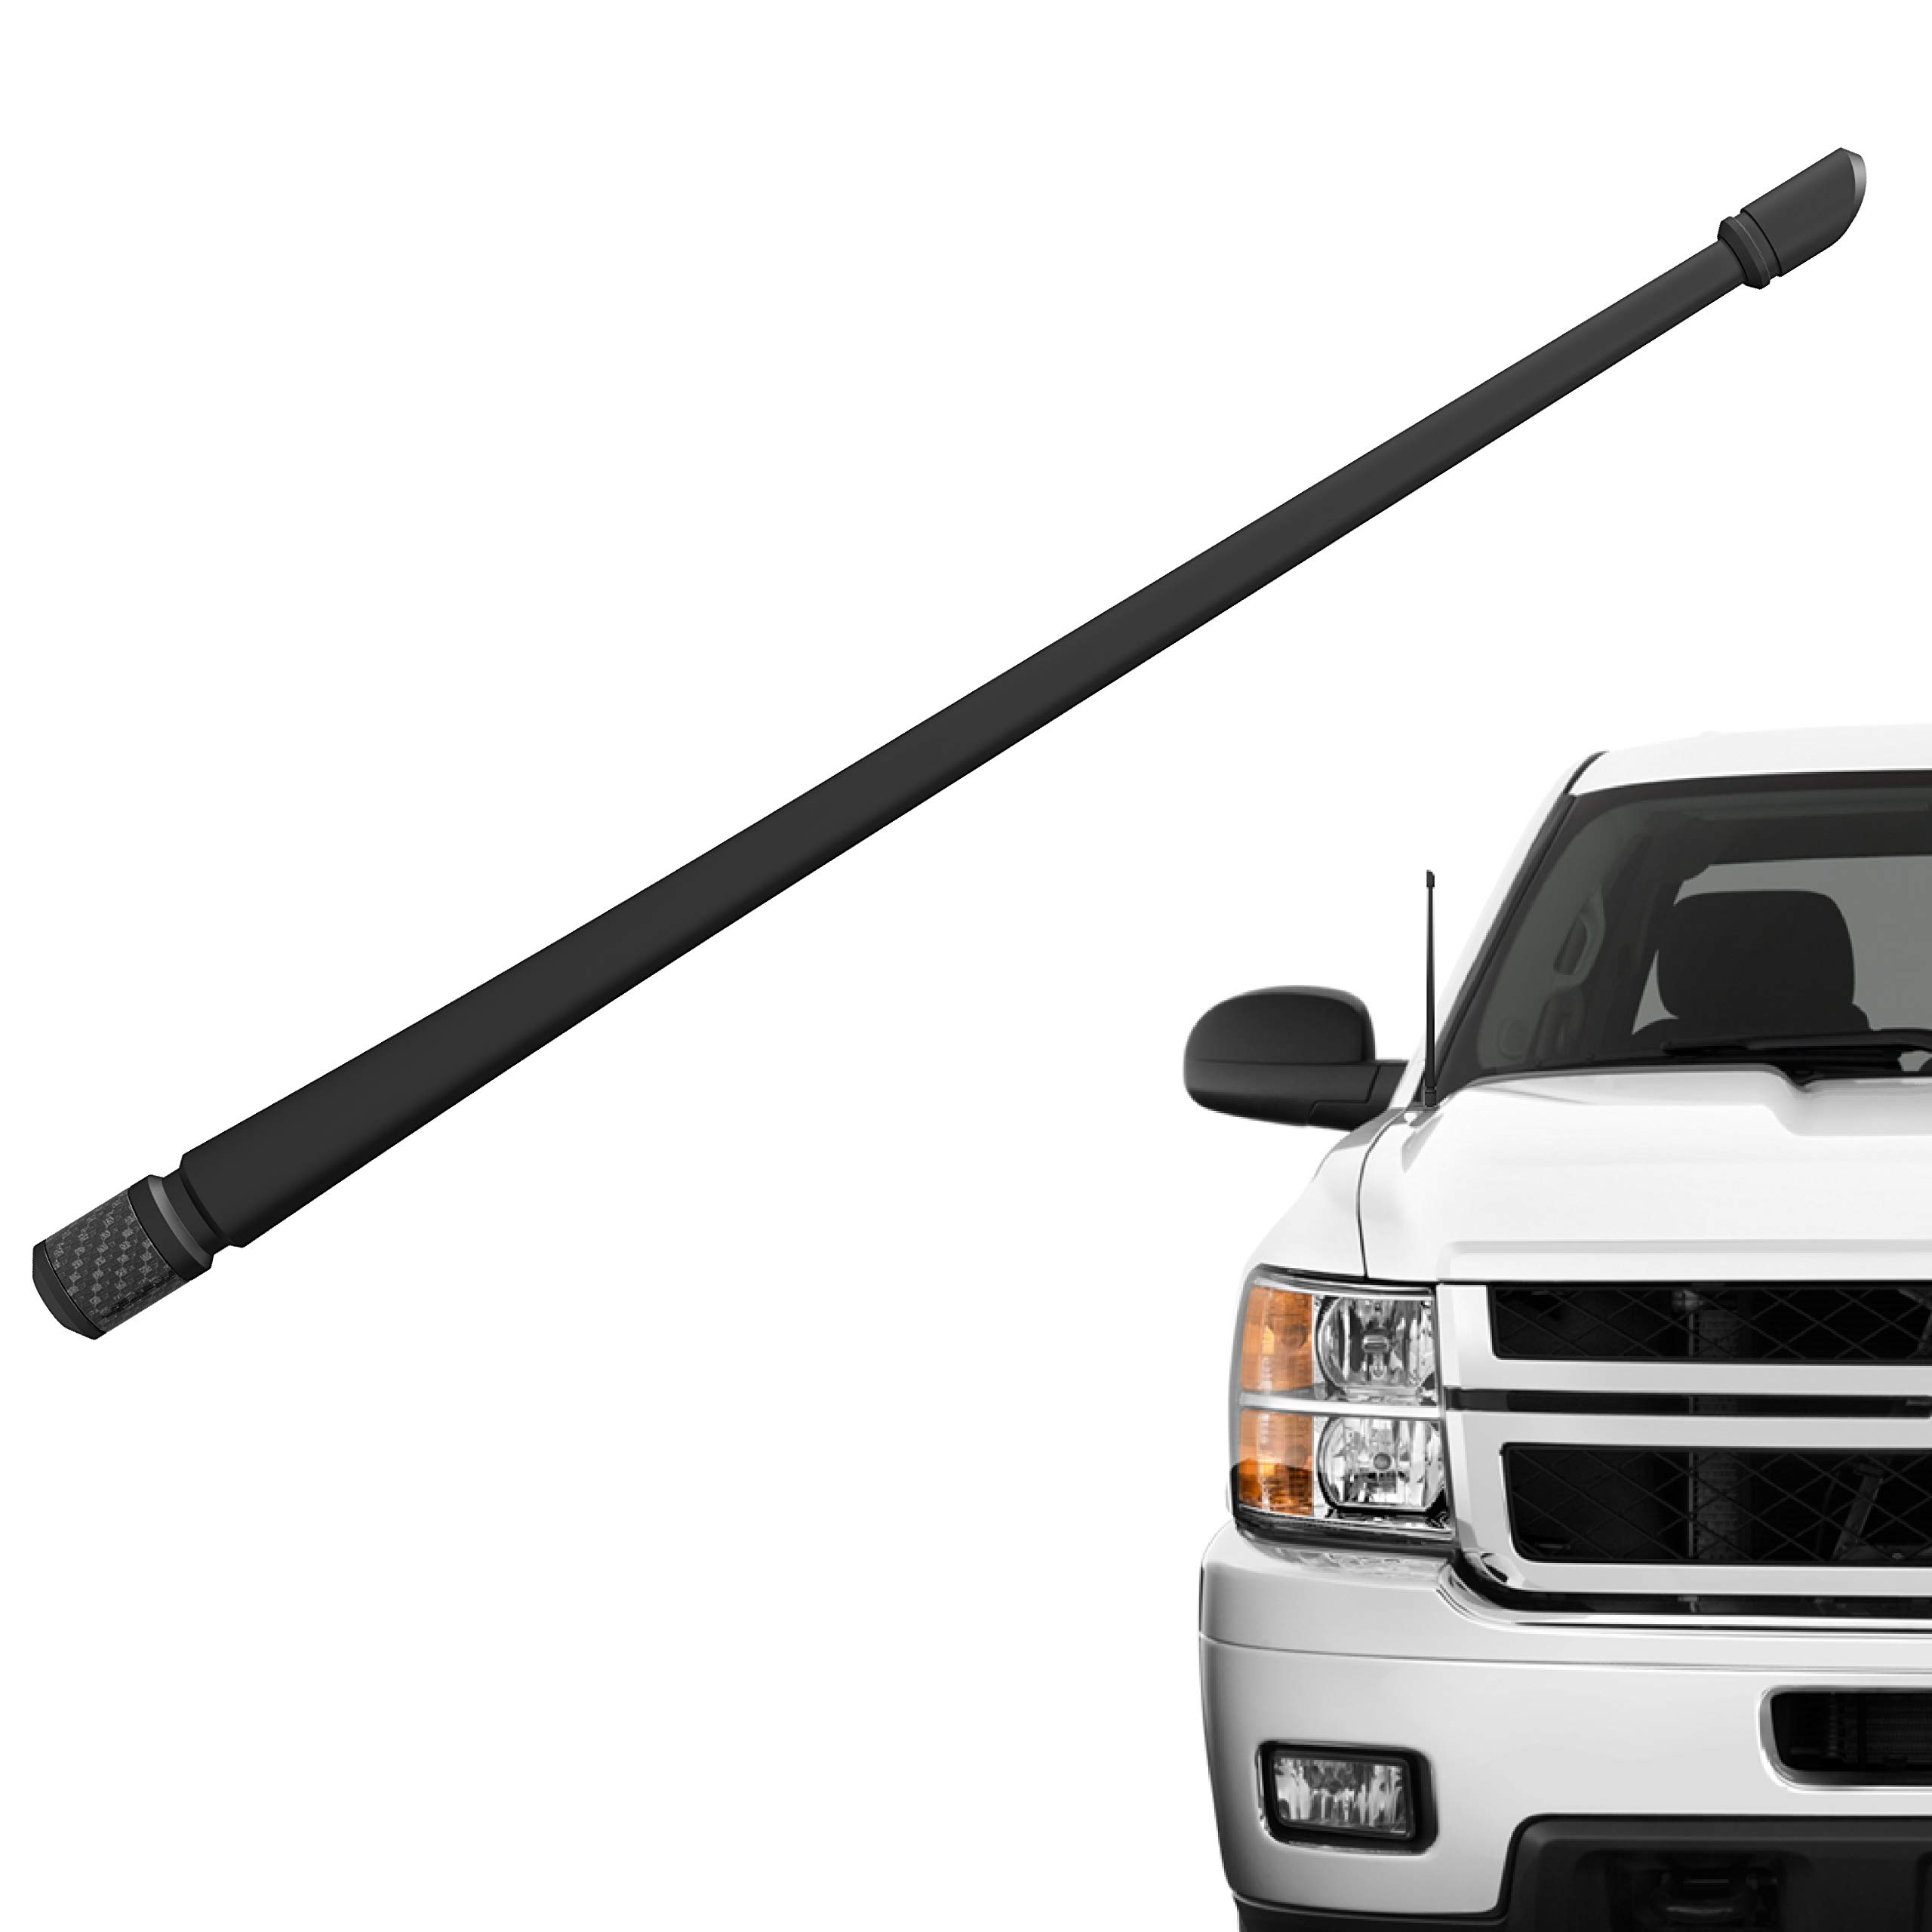 Rydonair Antenna Compatible with Chevy Silverado & GMC Sierra/Denali   13 inches Flexible Rubber Antenna Replacement   Designed for Optimized FM/AM Reception